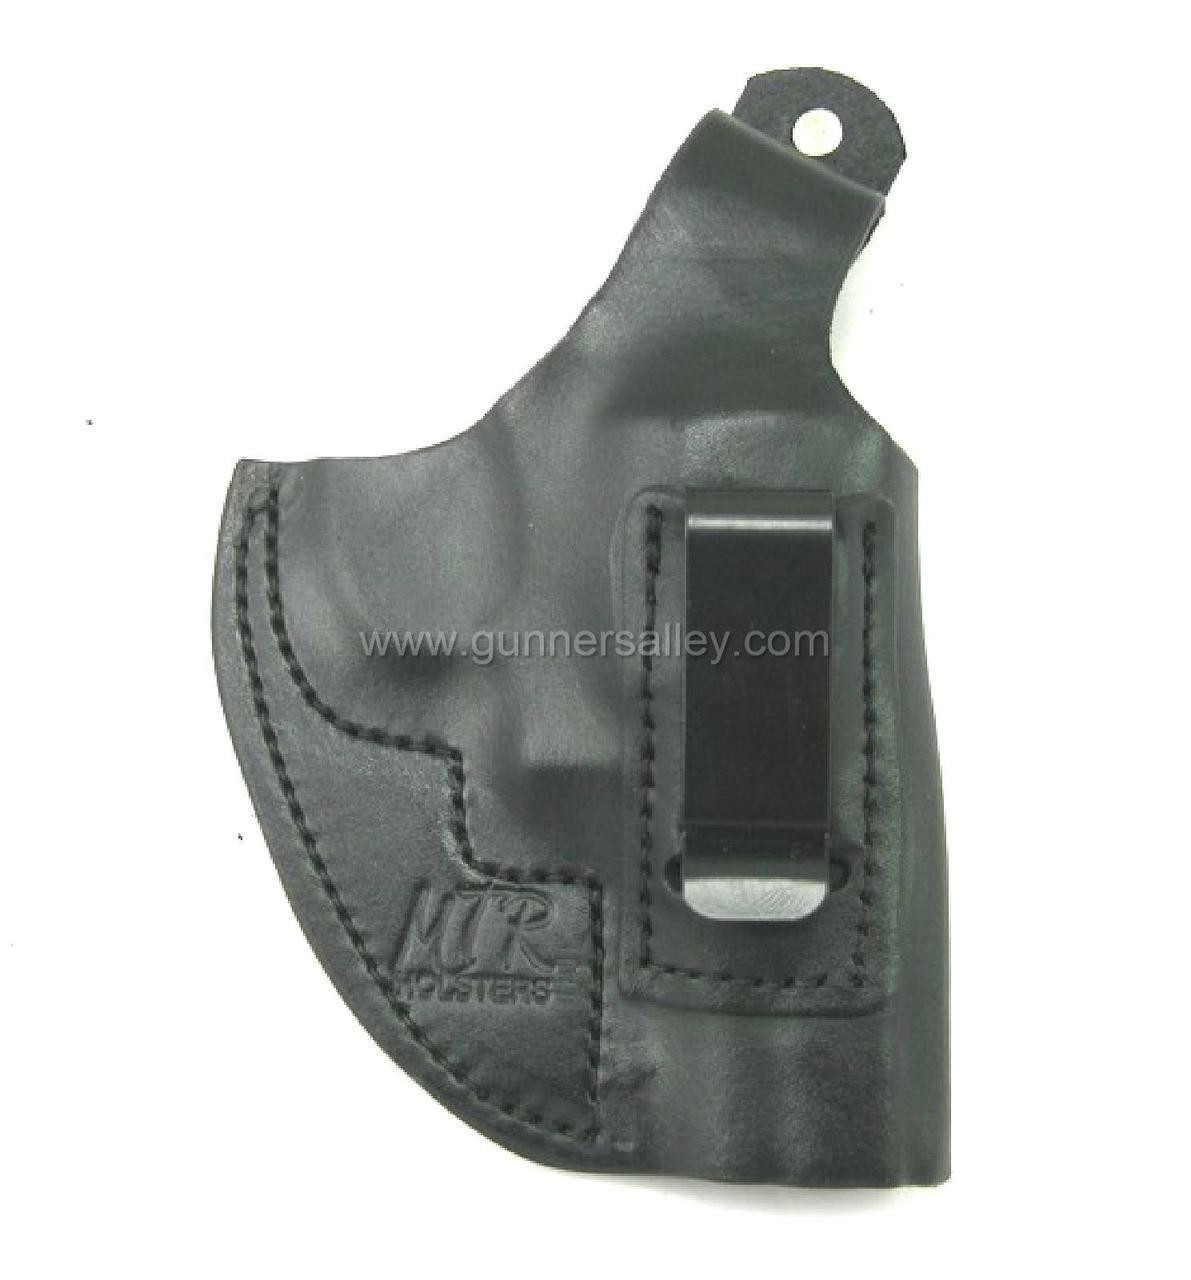 """RH Black MTR Custom Adversary Clip-On IWB Holster with Thumb Break for a S&W L Frame Revolver 2.5"""" Barrel - Front View"""